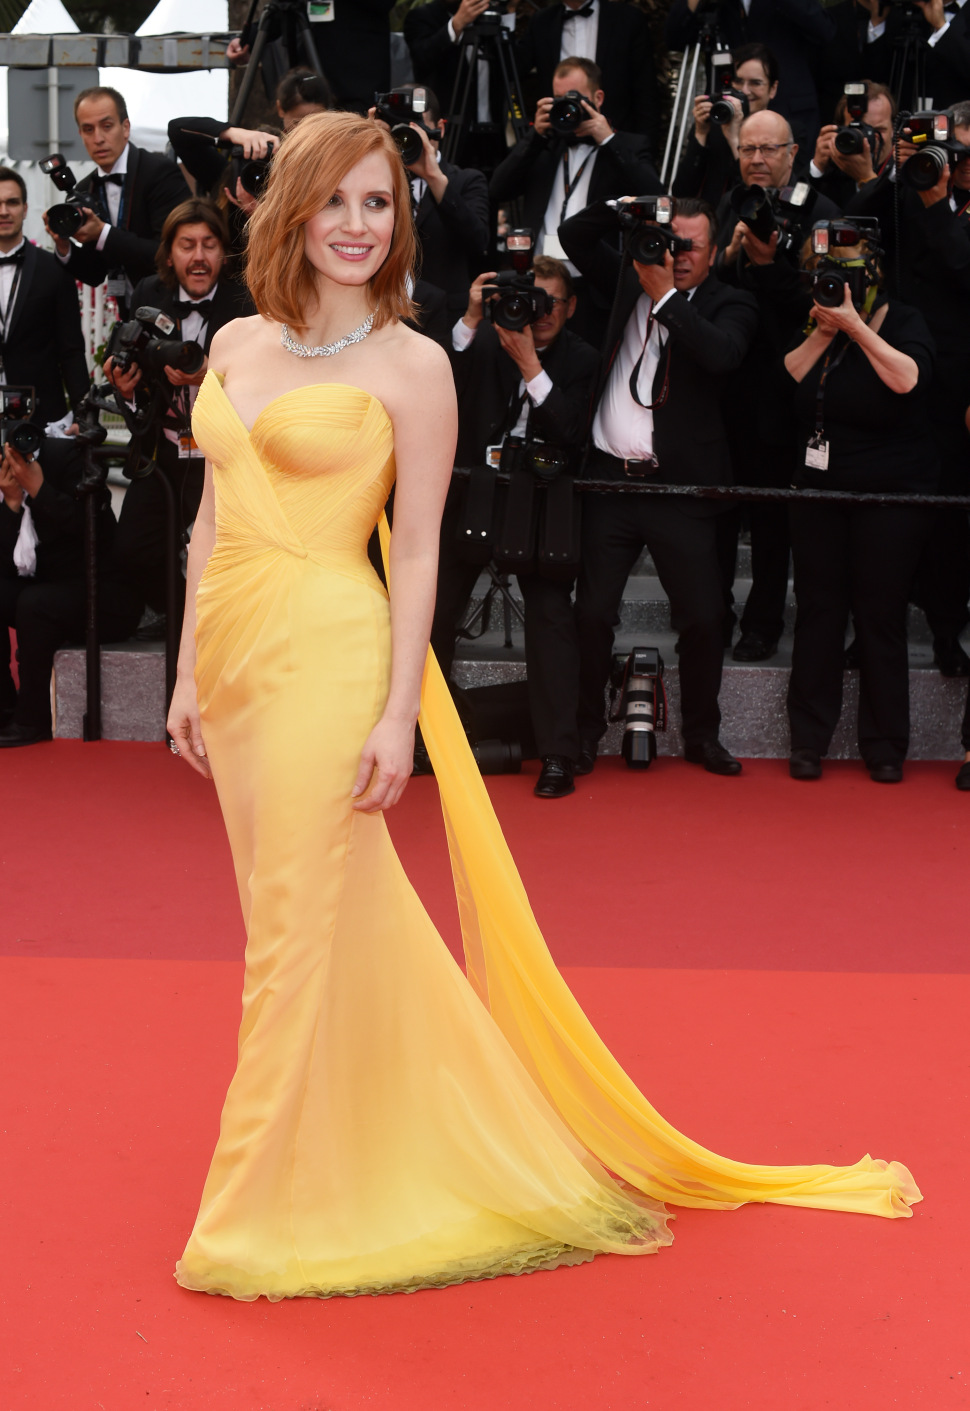 Mandatory Credit: Photo by David Fisher/REX/Shutterstock (5682155cm) Jessica Chastain'Cafe Society' premiere and opening ceremony, 69th Cannes Film Festival, France - 11 May 2016